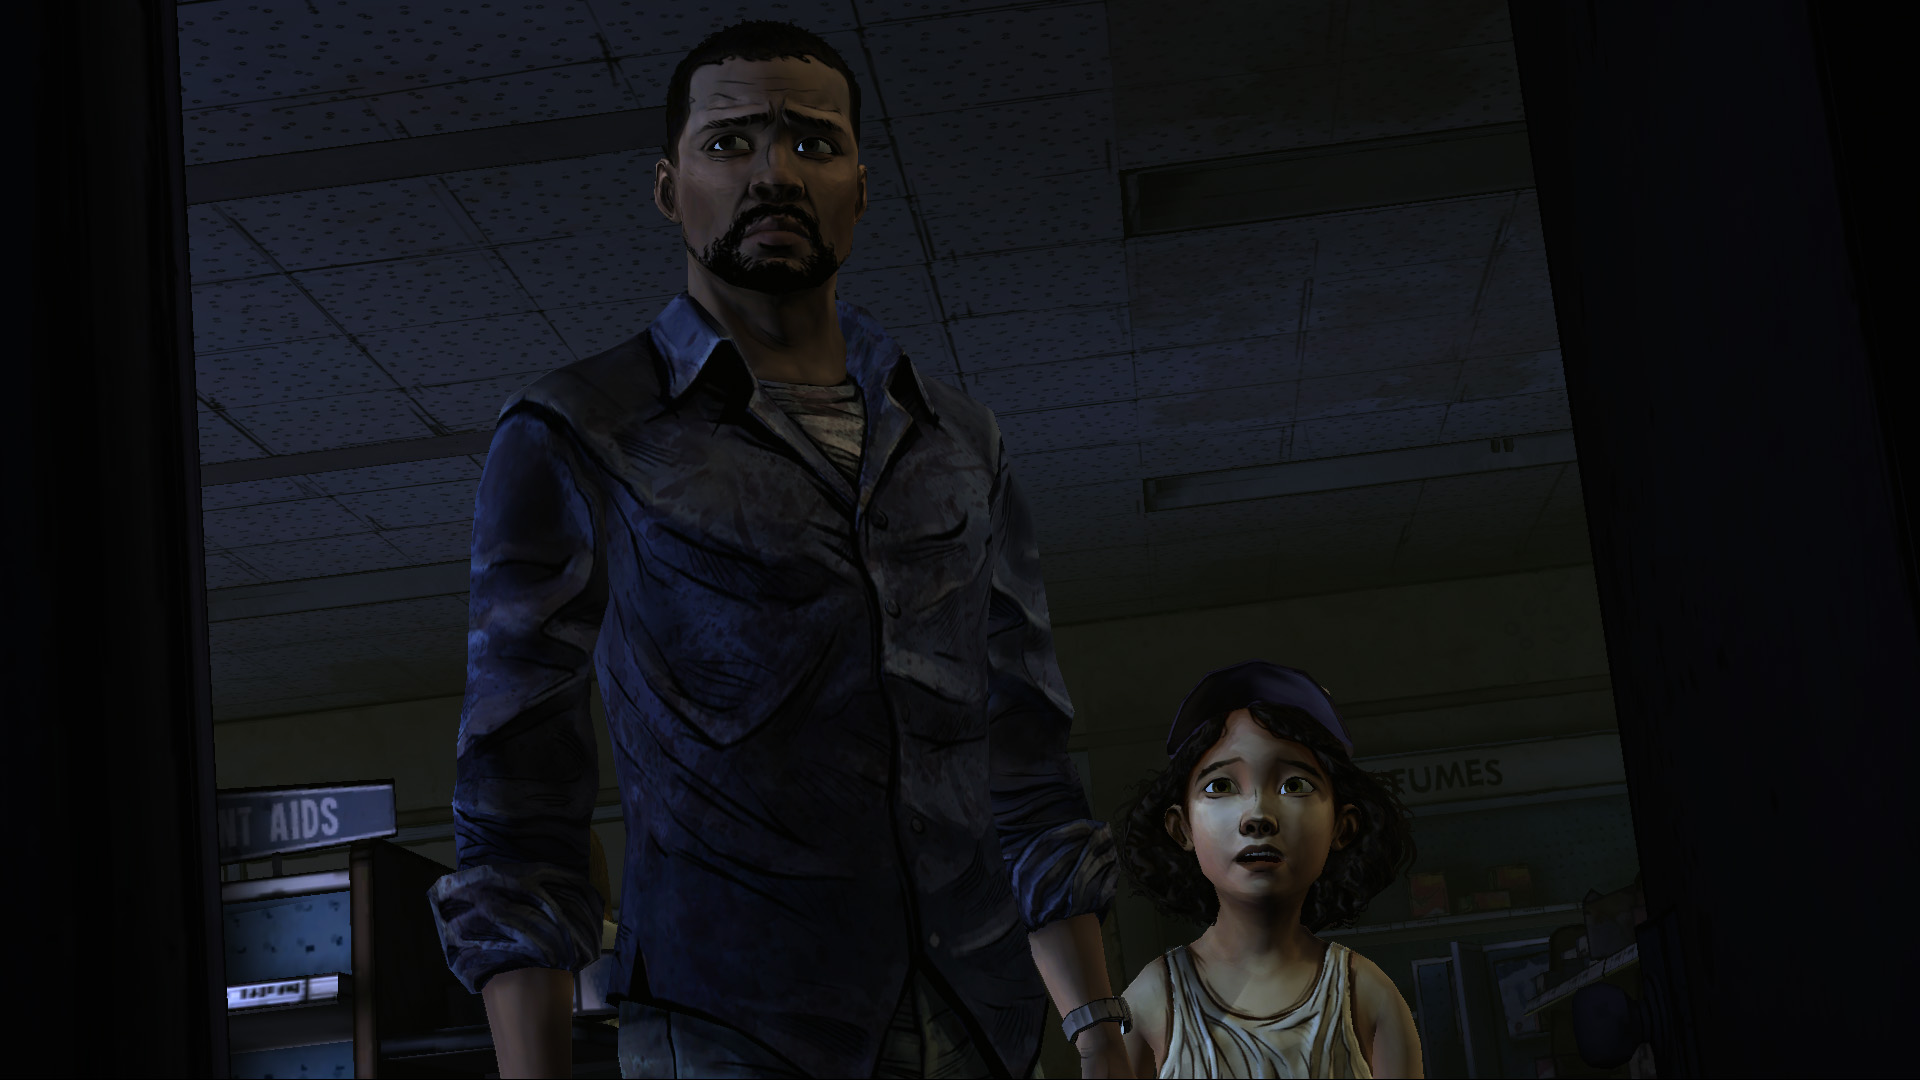 the-walking-dead-psn_1331908190.jpg